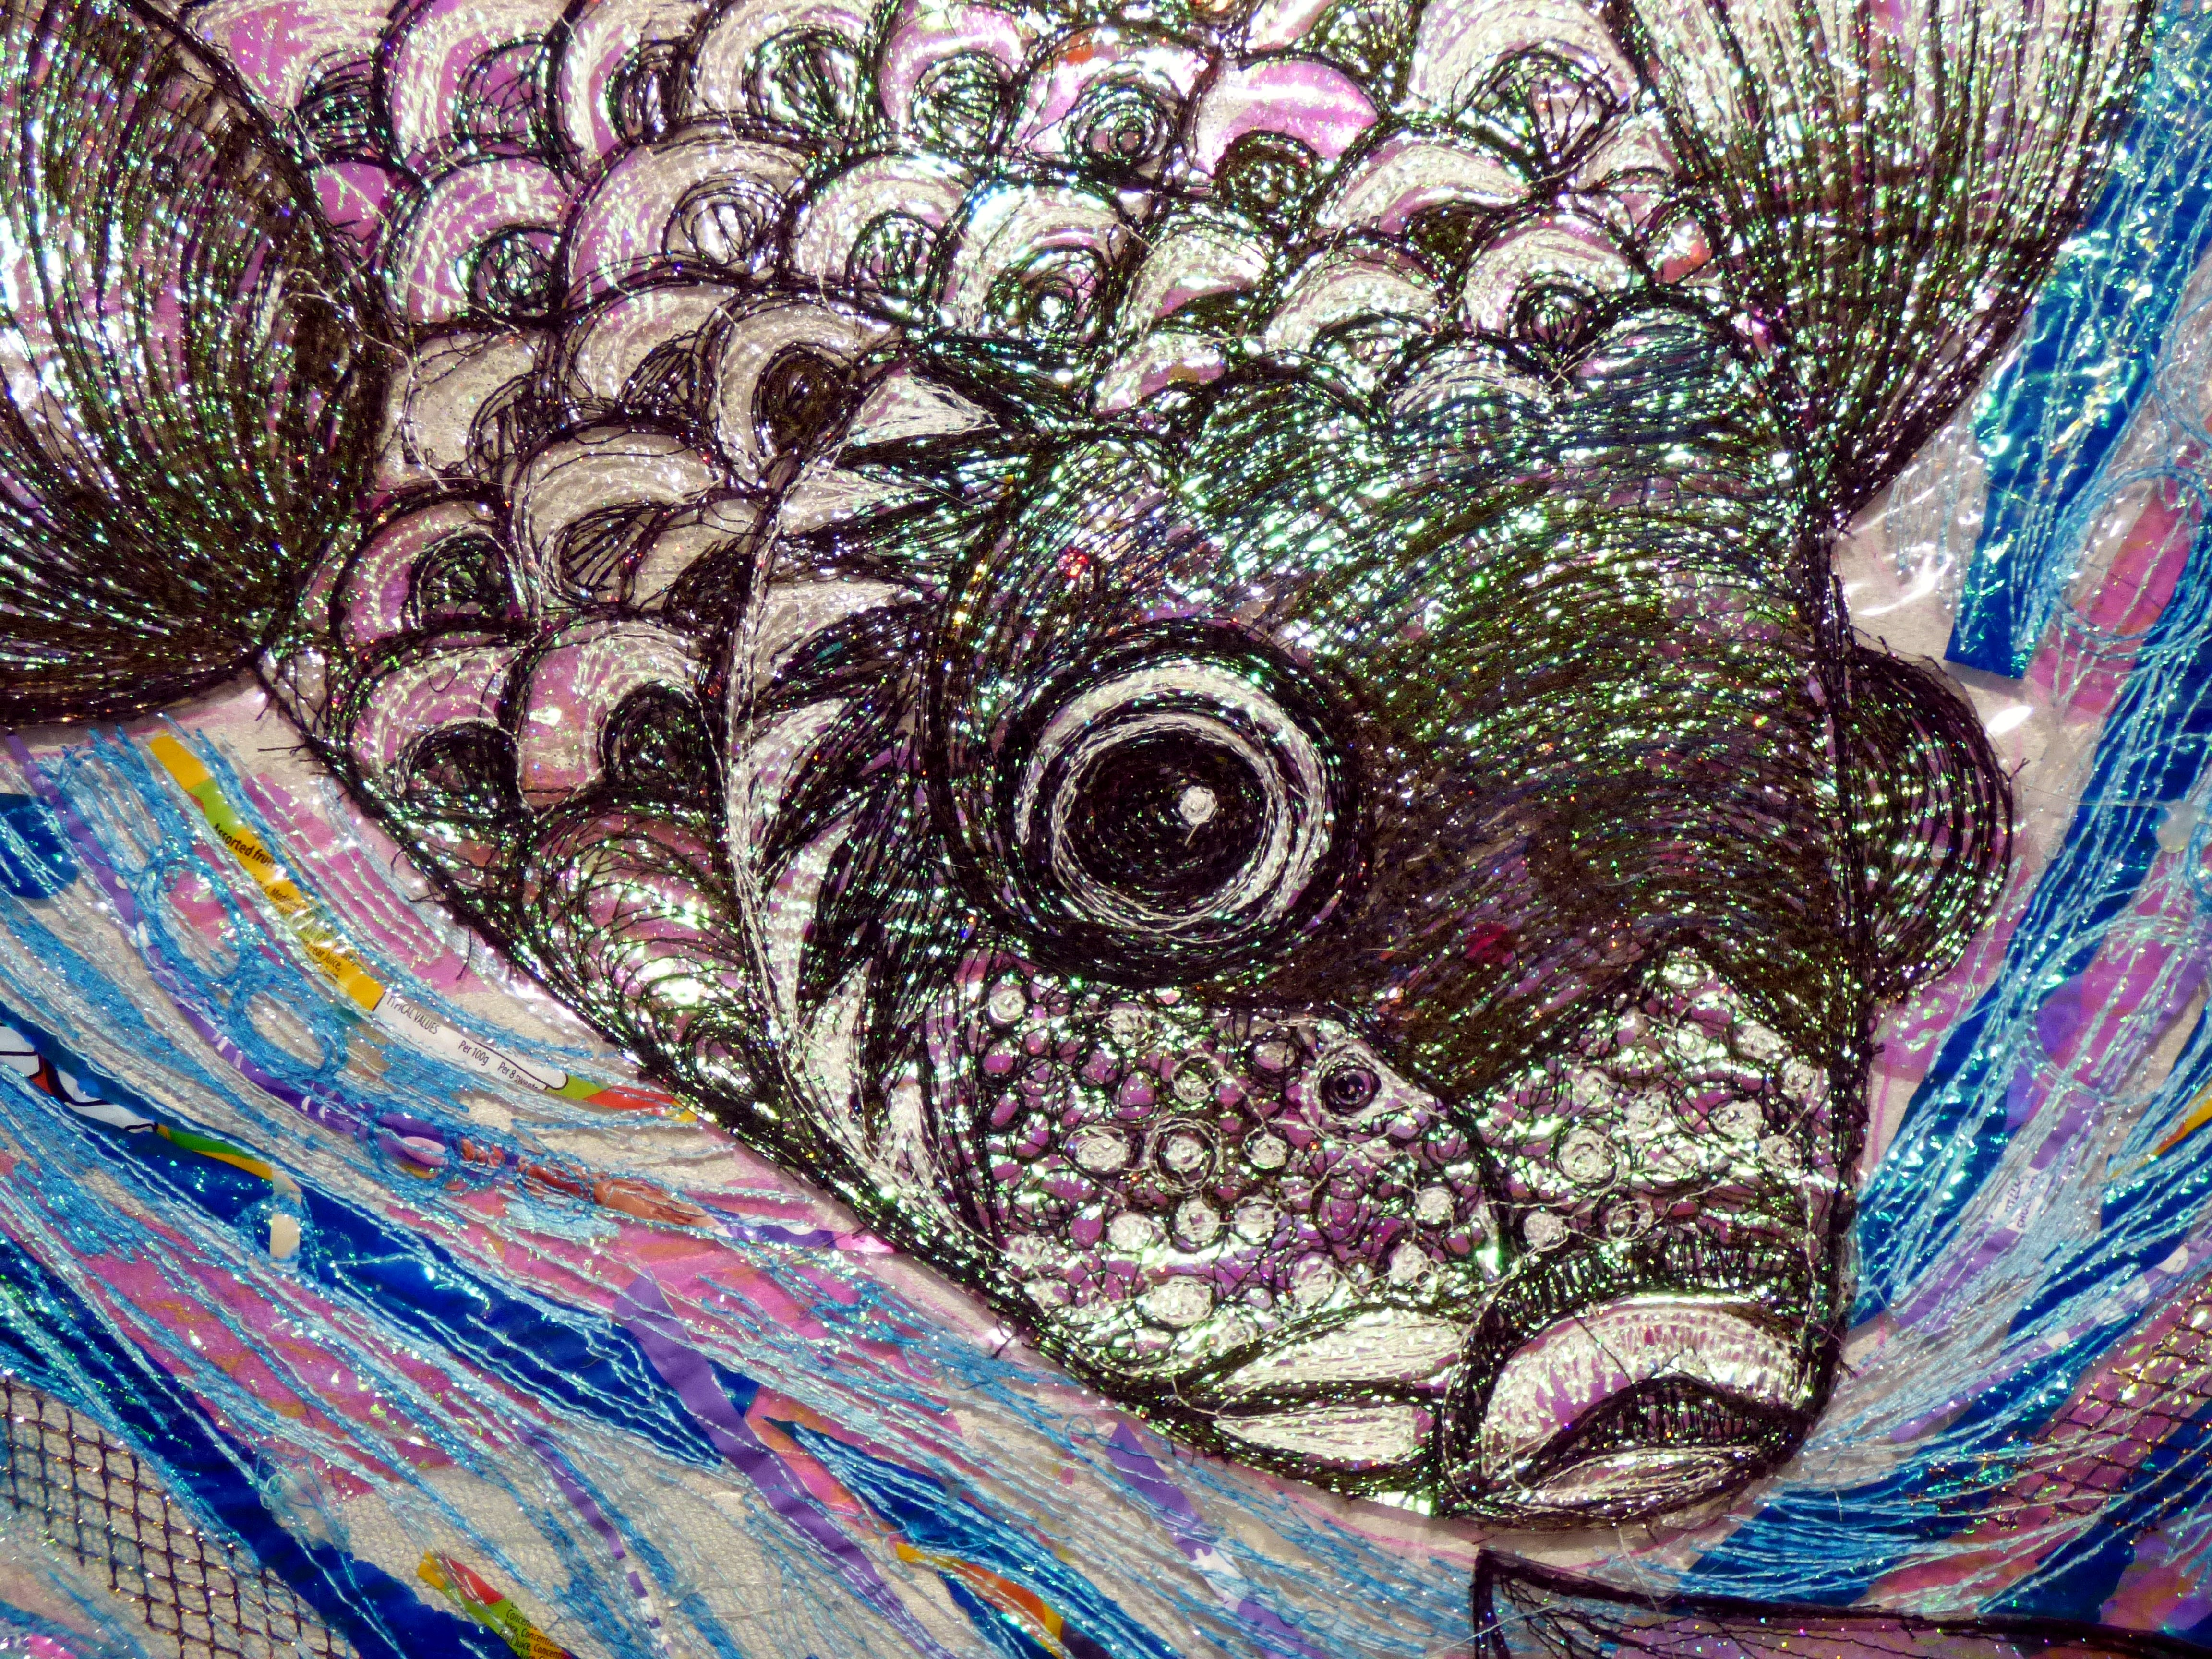 (detail) AND TWO FISHES by Nikki Parmenter, Gawthorpe Hall, Sept 2020